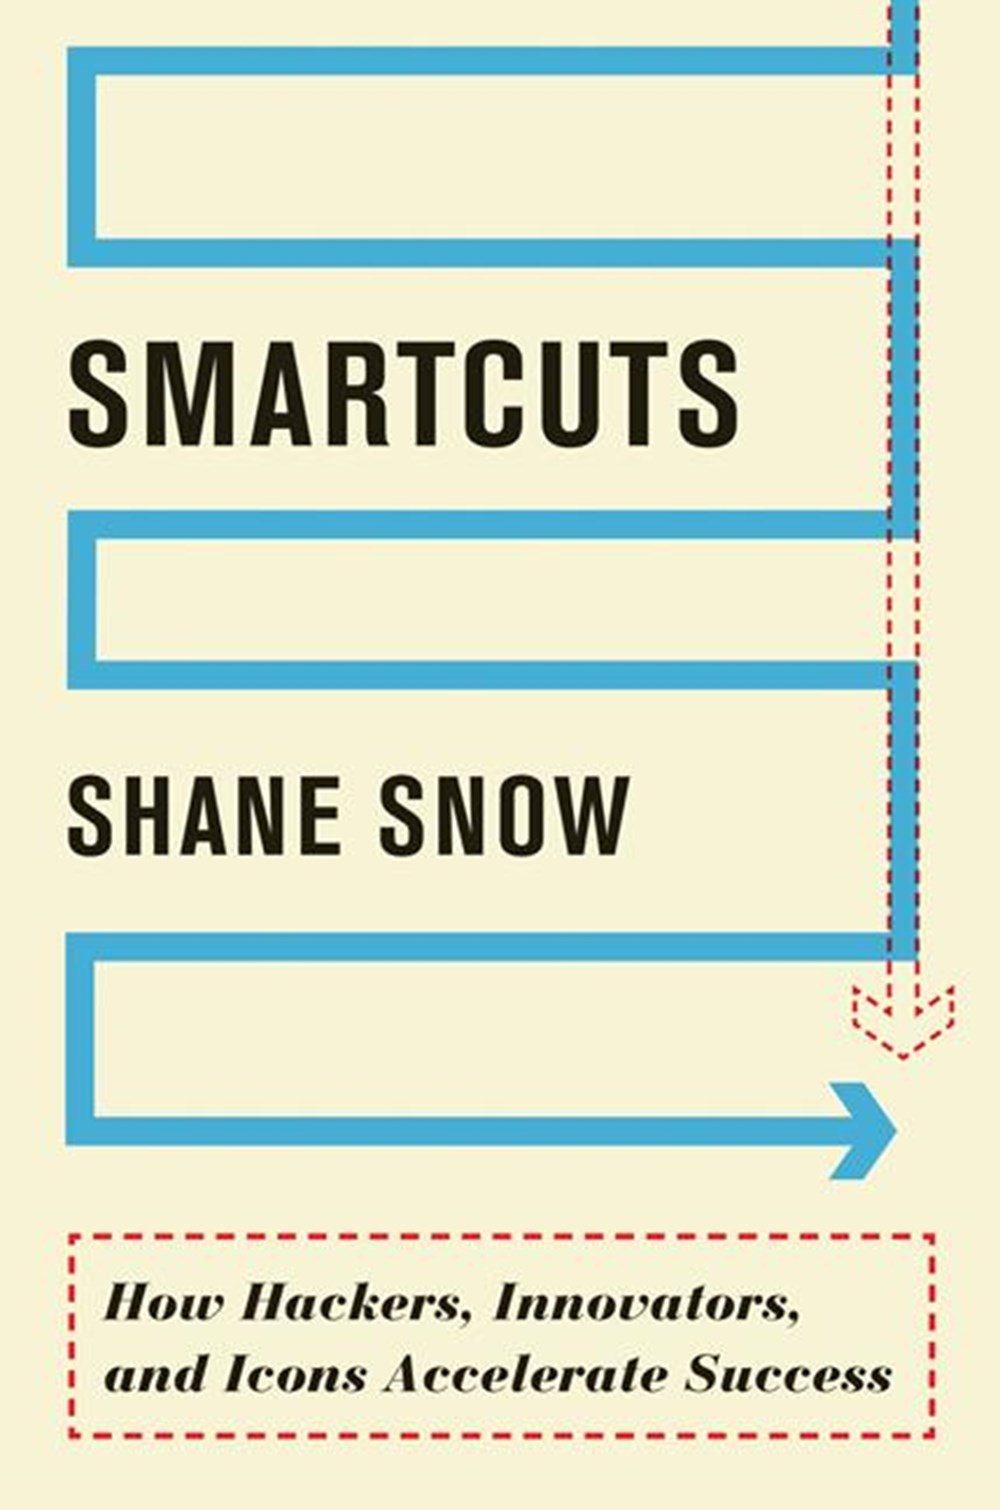 Smartcuts How Hackers, Innovators, and Icons Accelerate Success